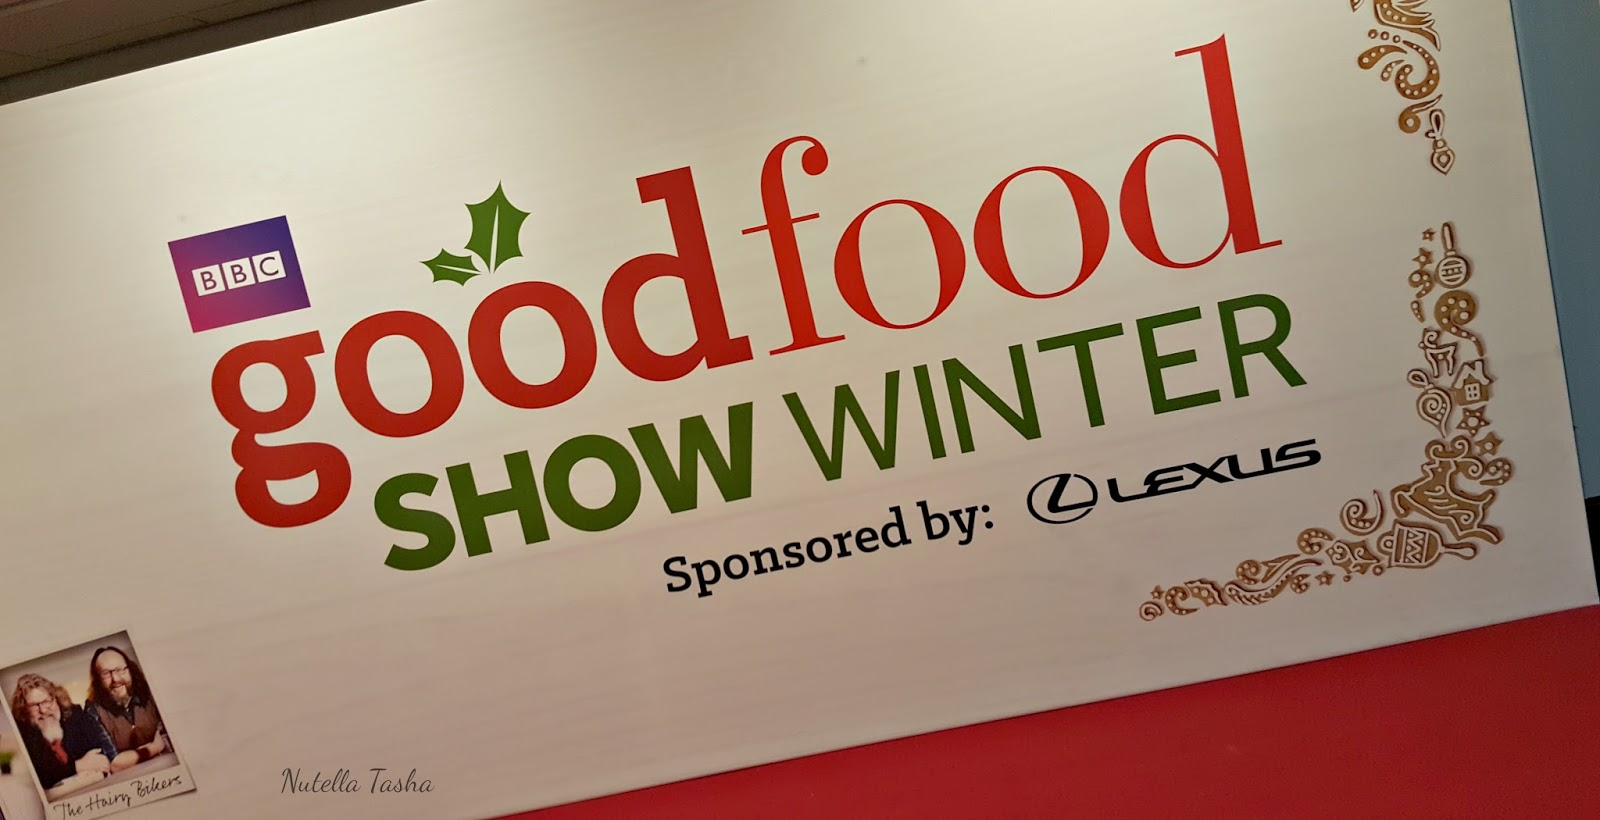 Why should every vegan visit the bbc good food show nutella tasha twice a year i am lucky enough to be able to visit the bbc good food show gfs when i first visited i found it hard to find anything i could buy forumfinder Choice Image